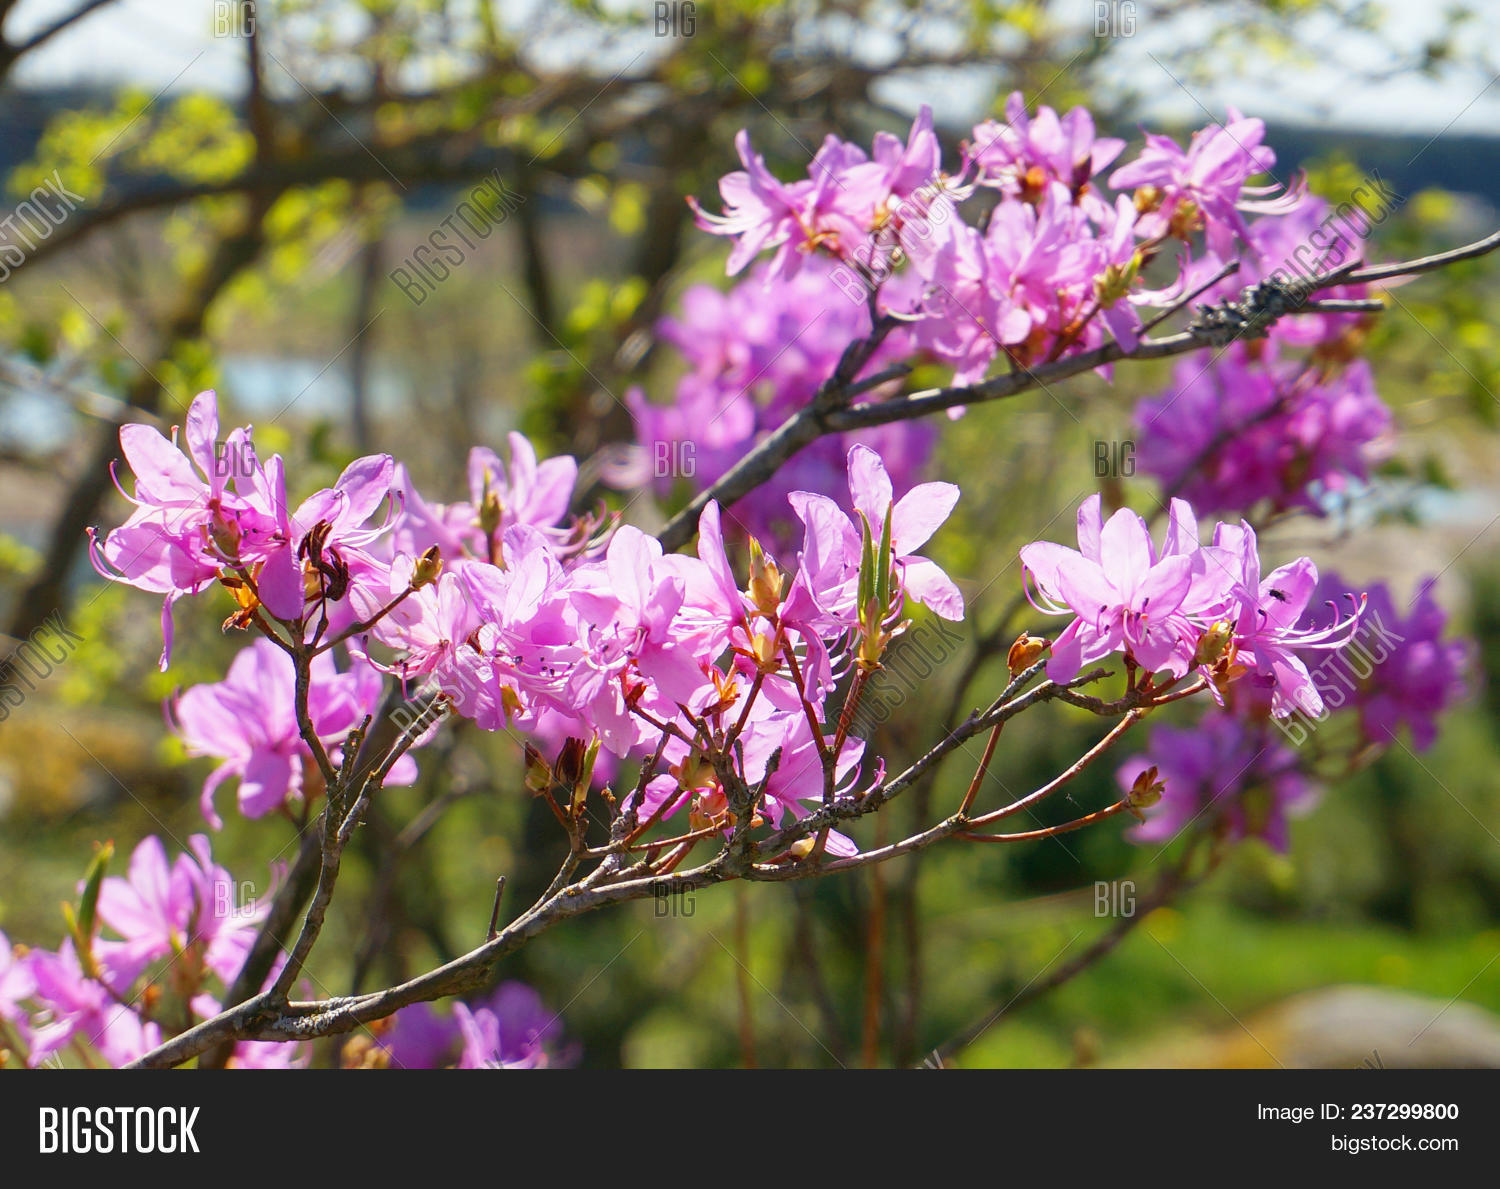 Amazing Magnolia Tree Image Photo Free Trial Bigstock